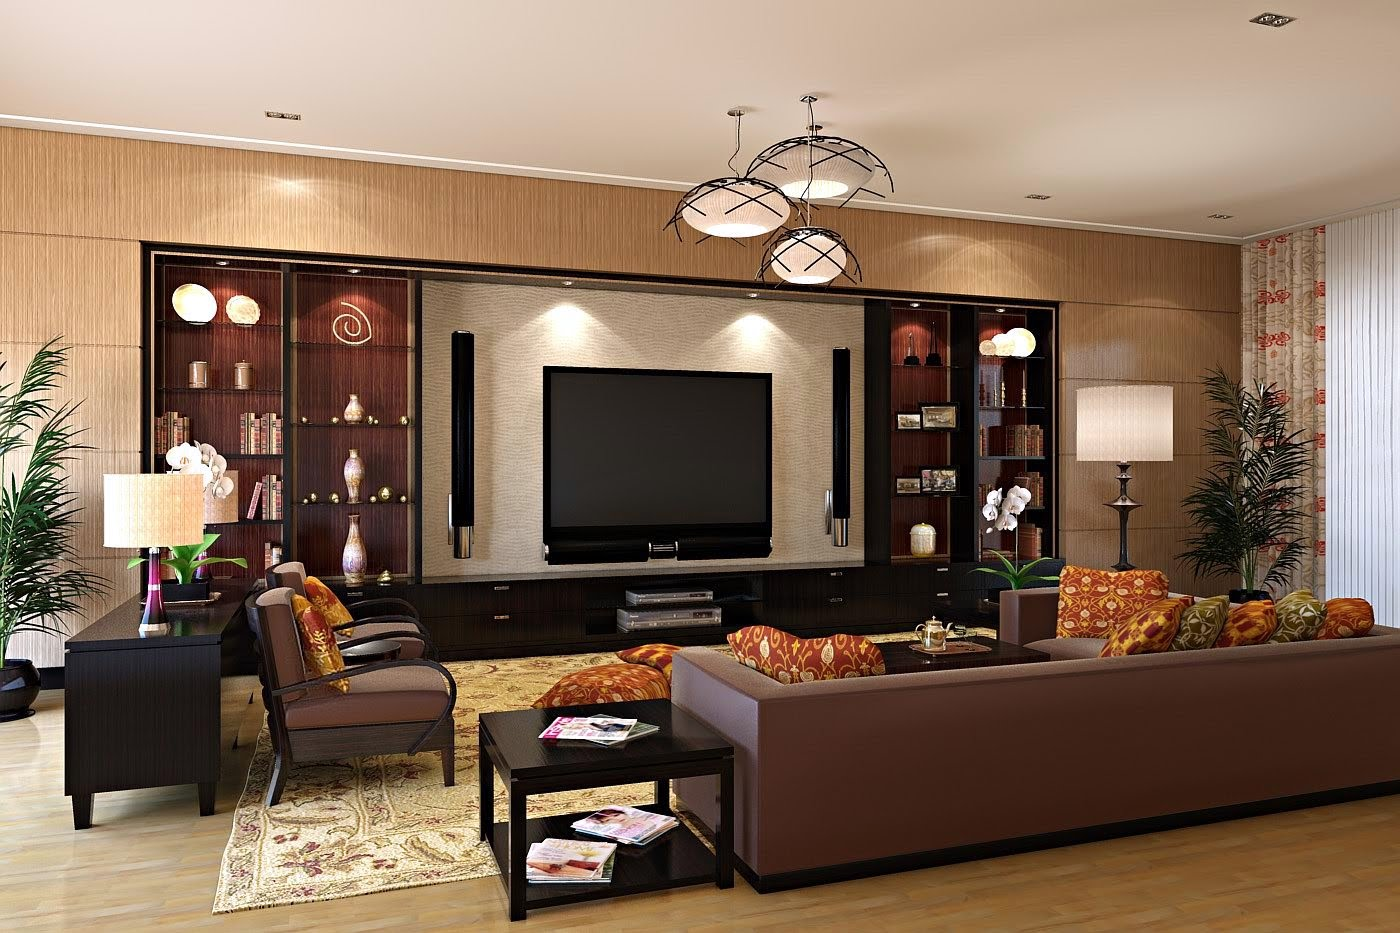 20 modern tv unit design ideas for bedroom living room for Living room tv designs modern